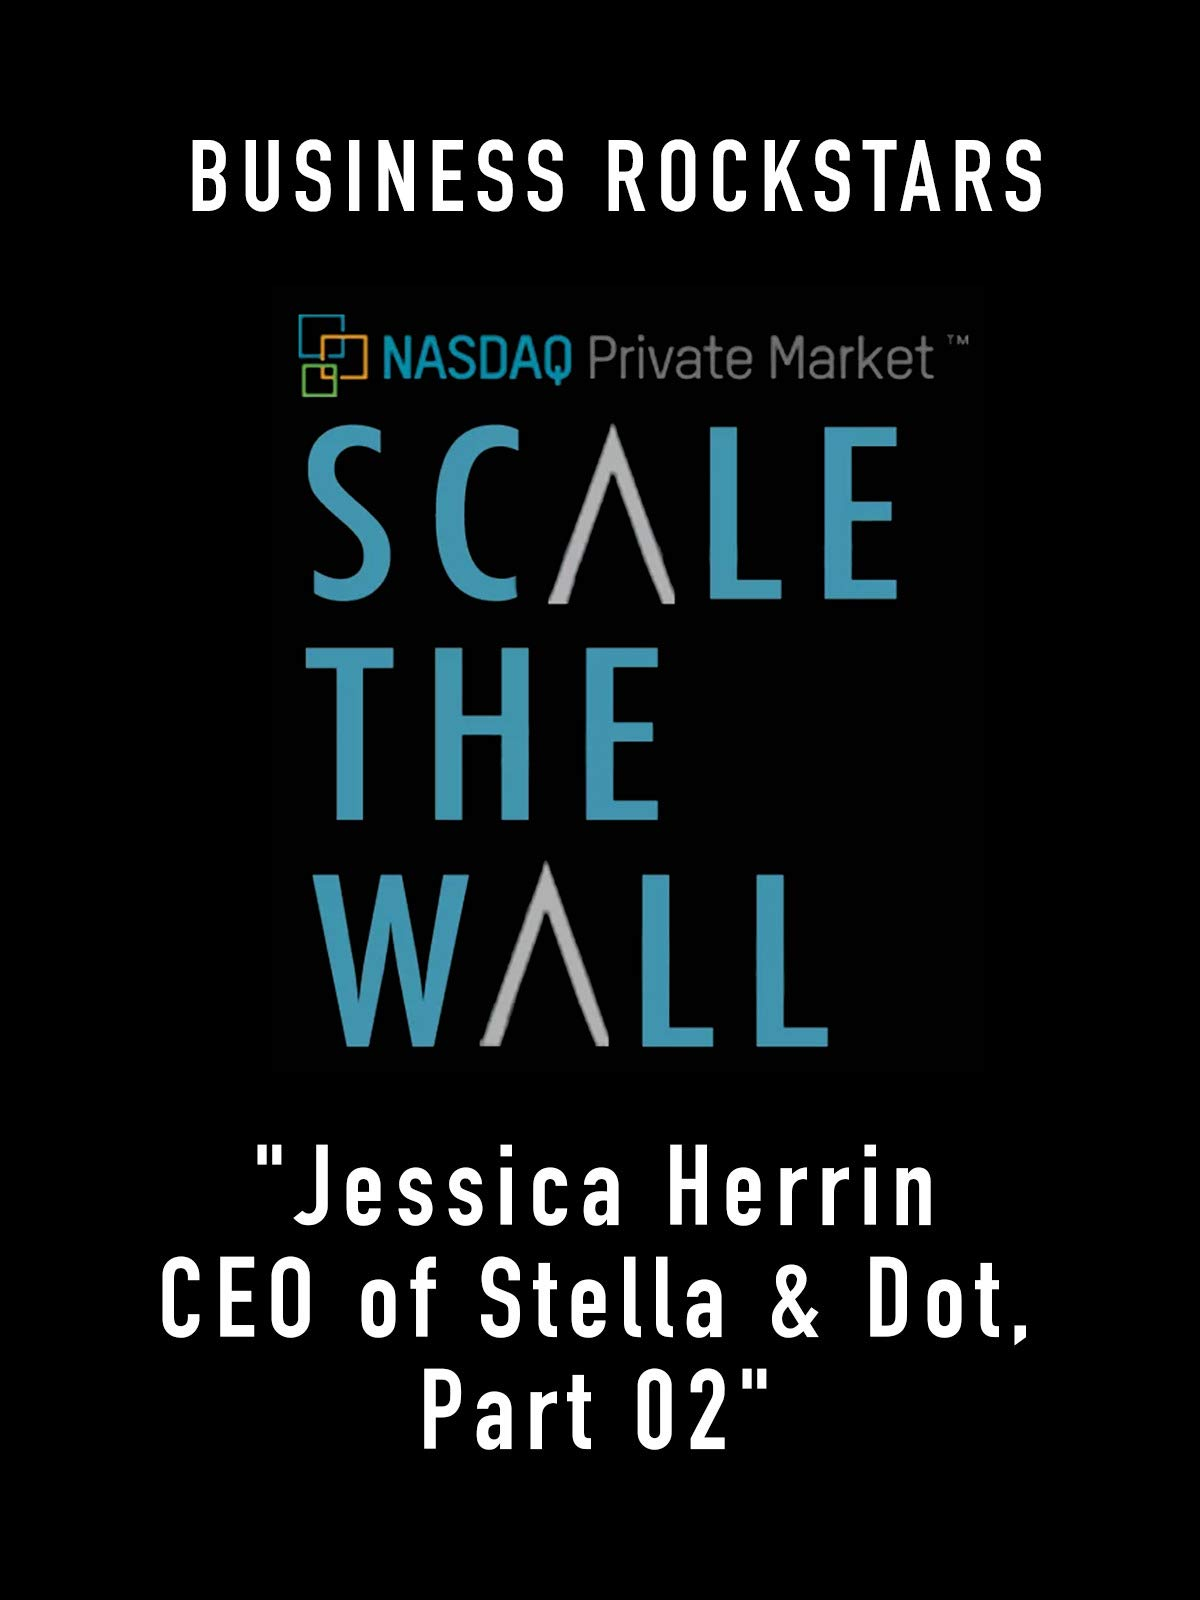 """Business Rockstars Scale The Wall """"Jessica Herrin CEO of Stella Dot, Part 02"""""""